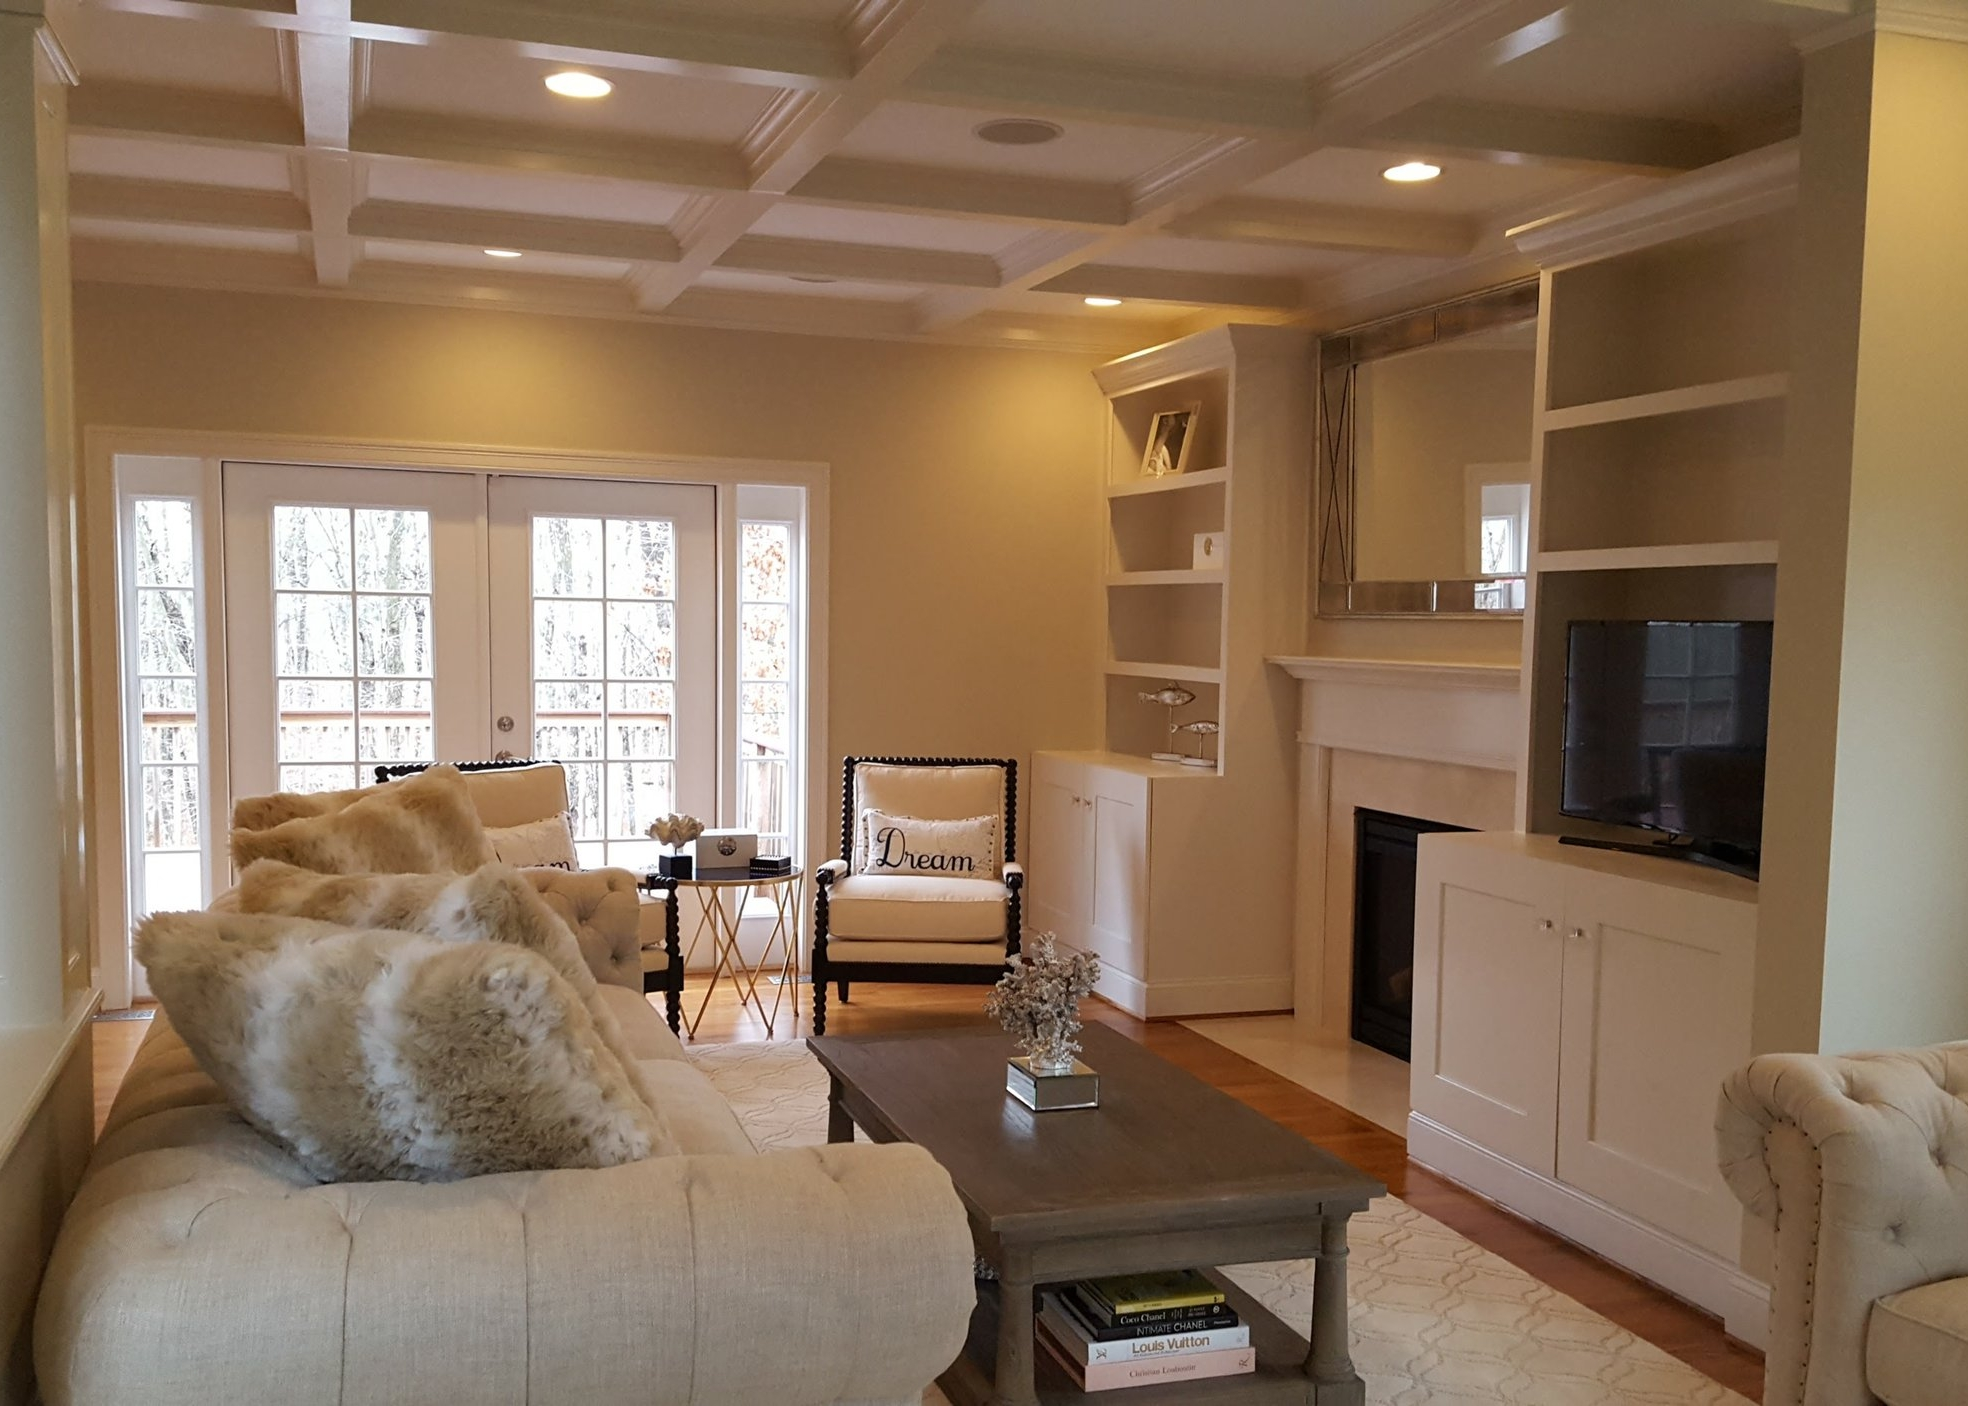 Living Room Design and Remodel in East Lyme CT | Shaw Remodeling